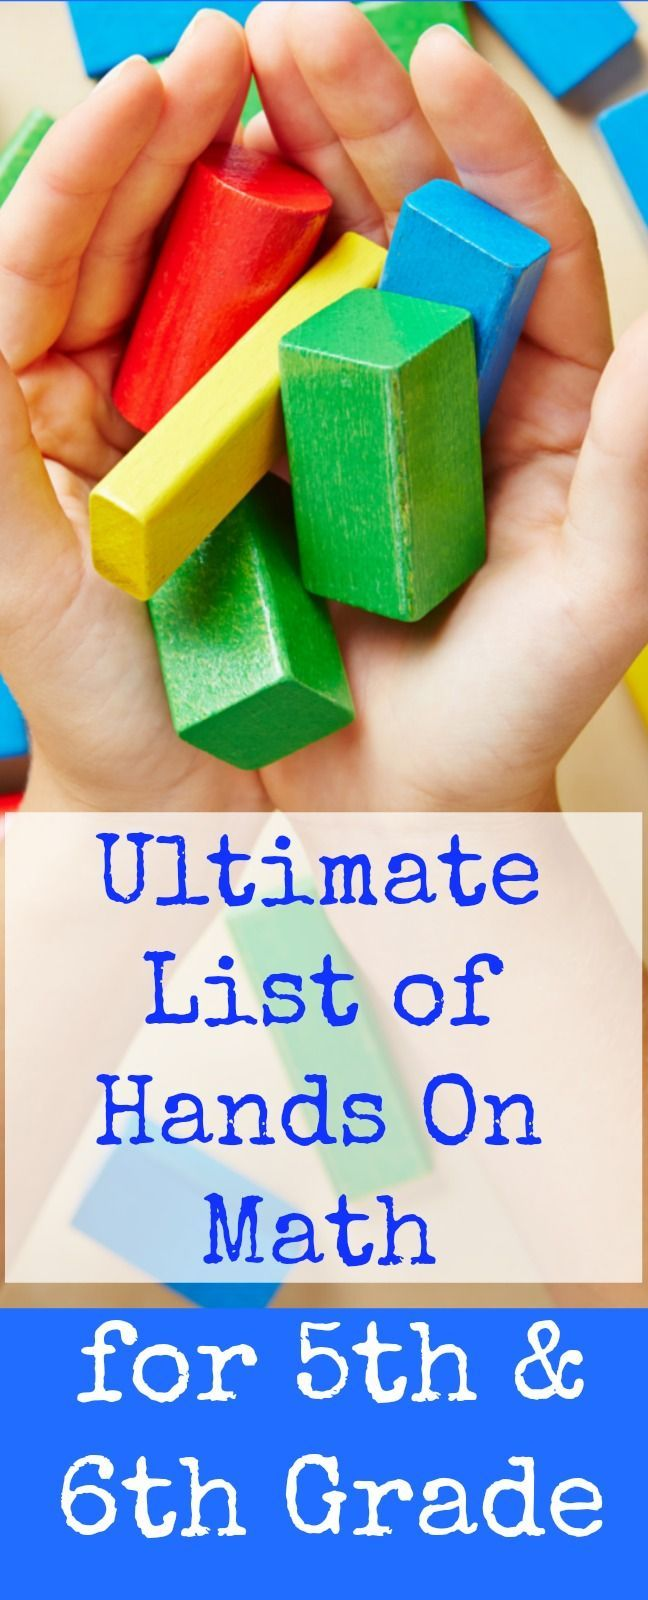 Ultimate list of hands on math for 5th grade and 6th grade. Activities for fractions, decimals, geometry, metric system conversion, integers, pi, and more.